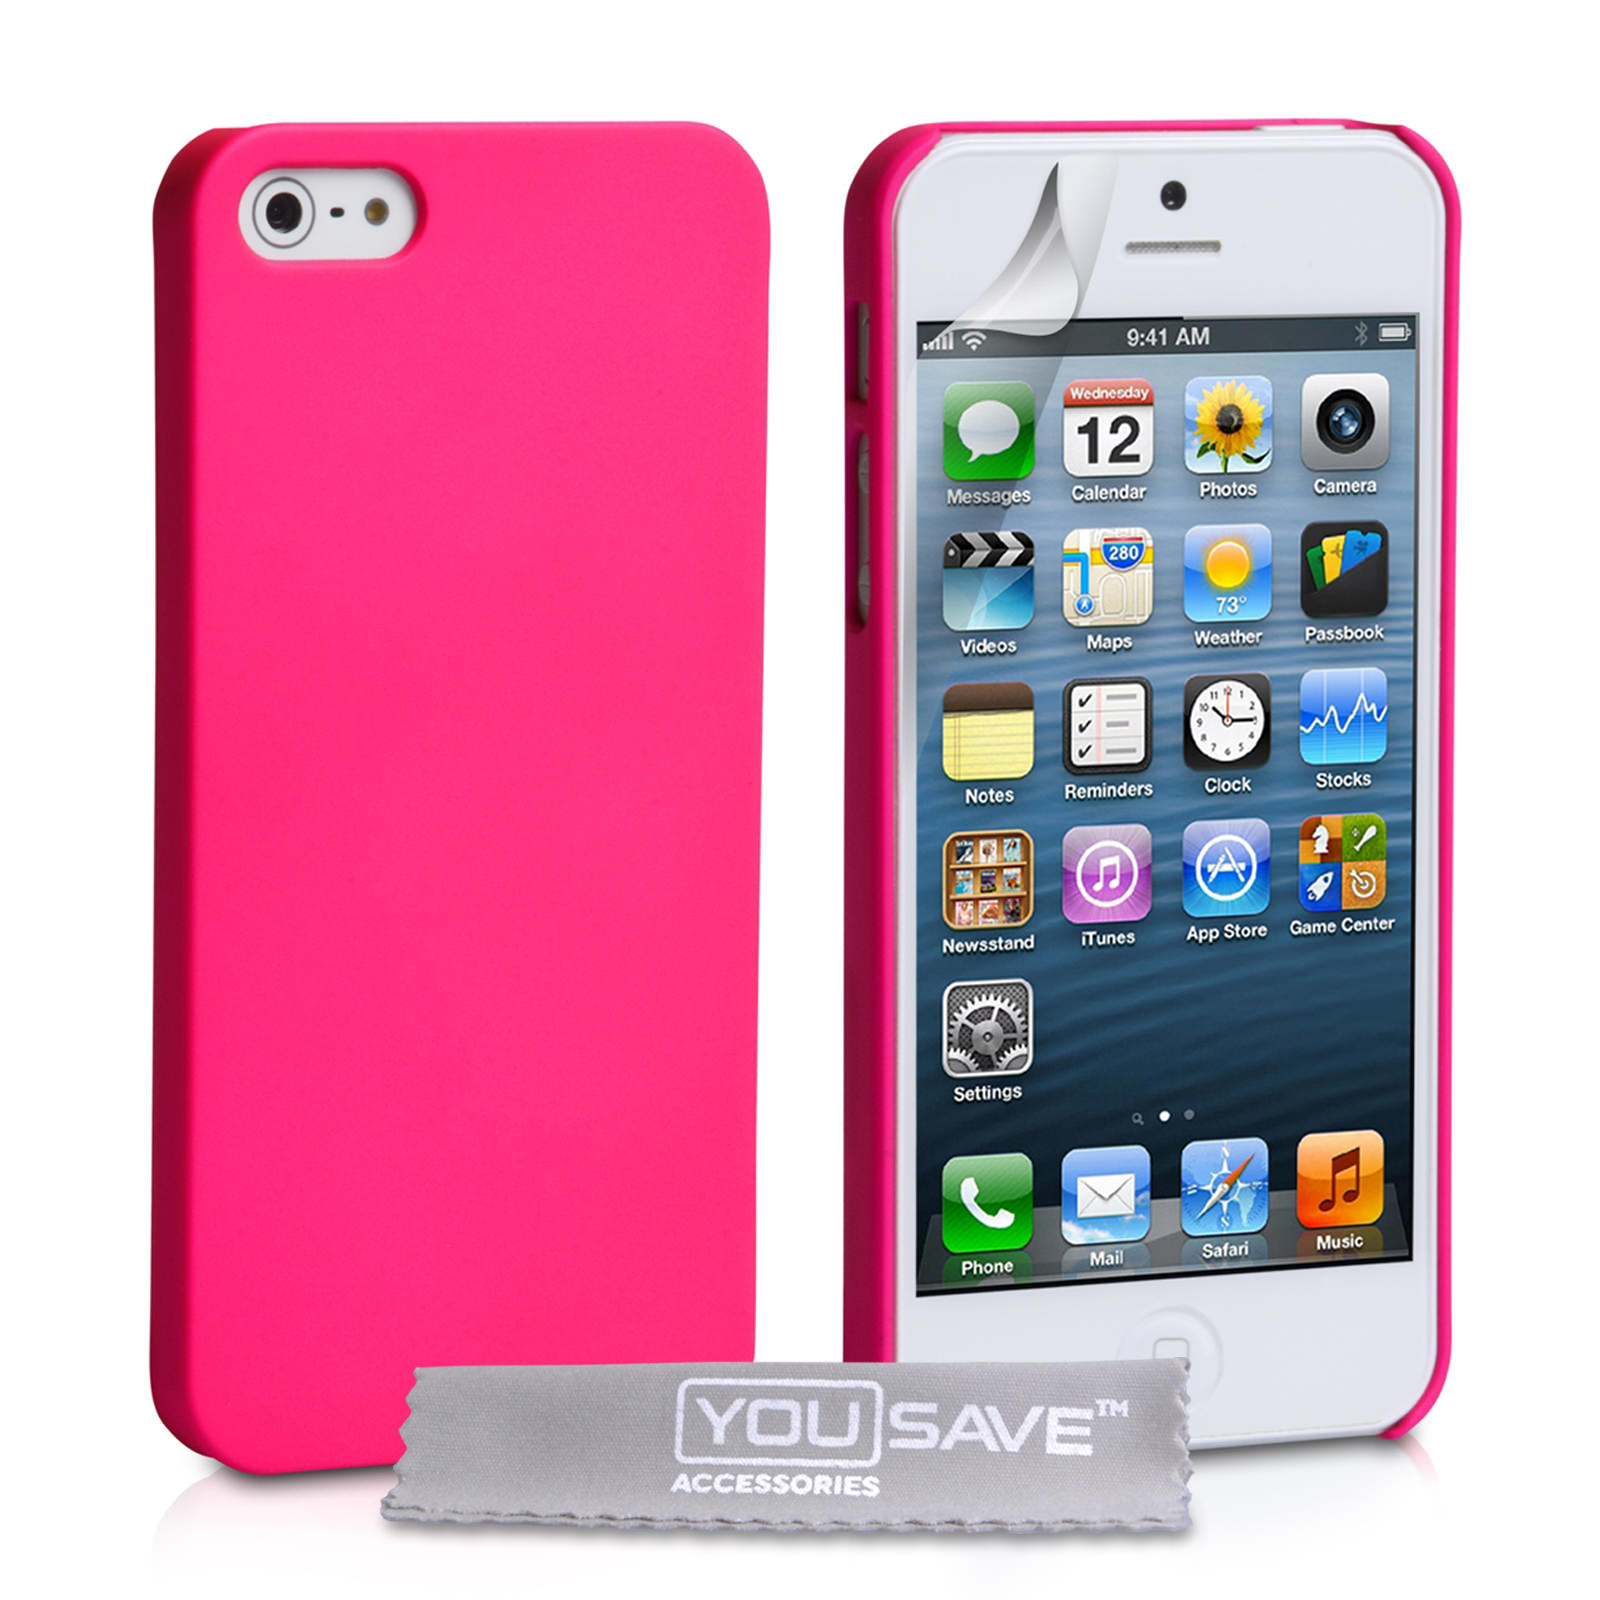 iphone 5s getting hot yousave iphone 5 5s hybrid pink mob 14803